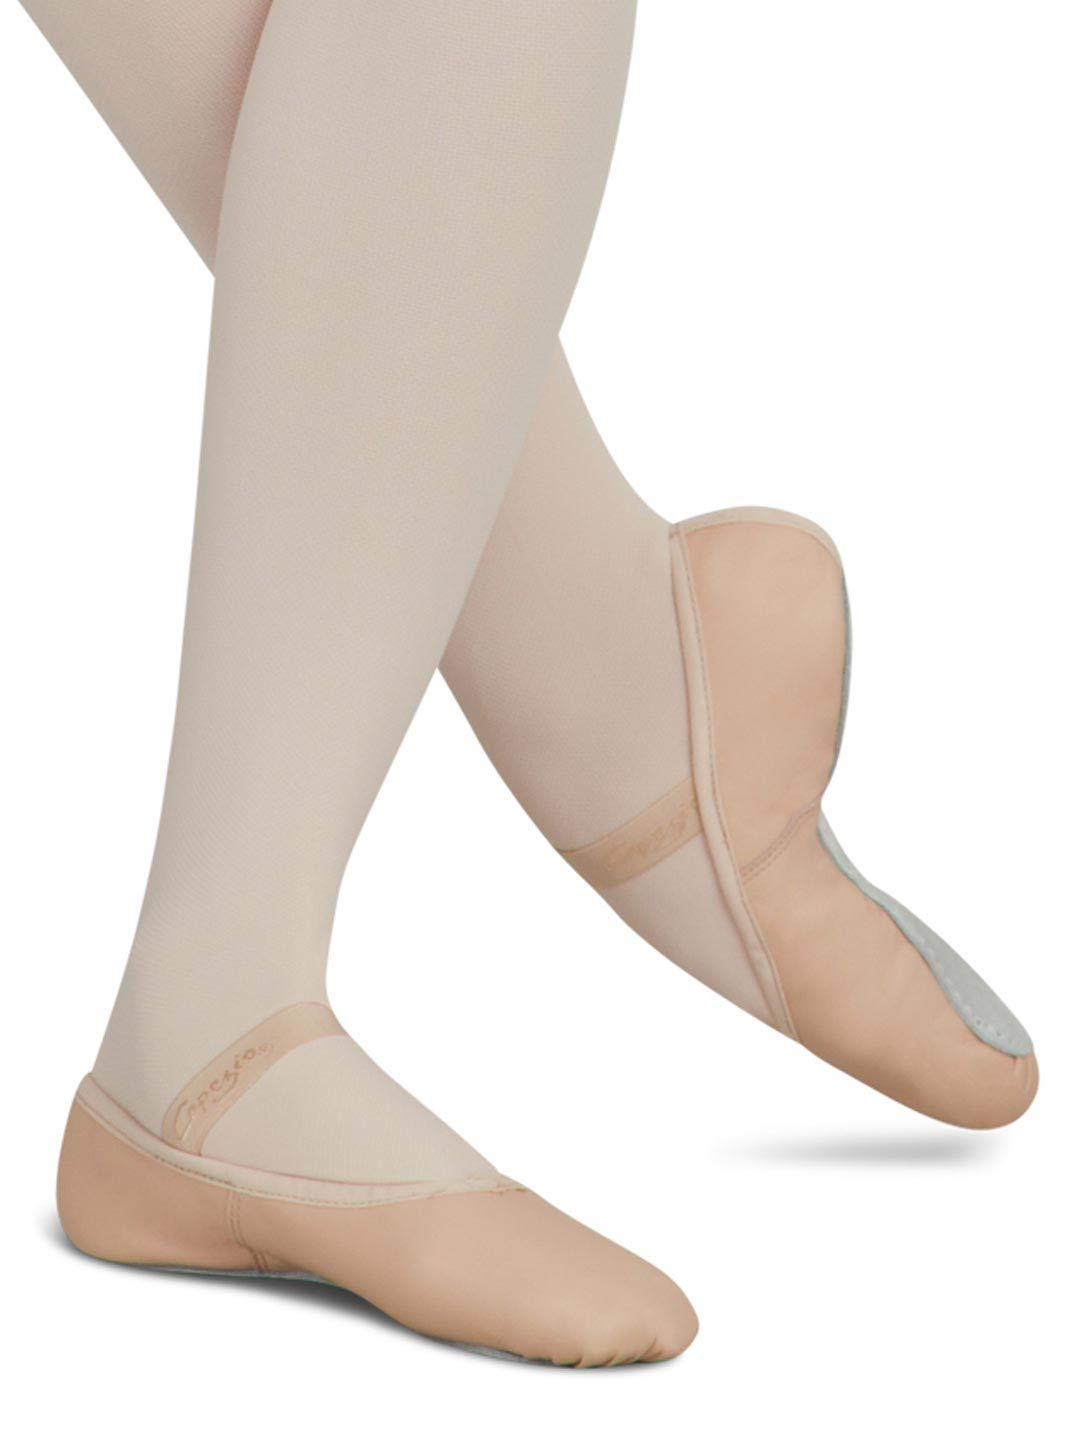 Capezio Daisy 205 Ballet Shoe (Toddler/Little Kid),White,2.5 W US Little Kid